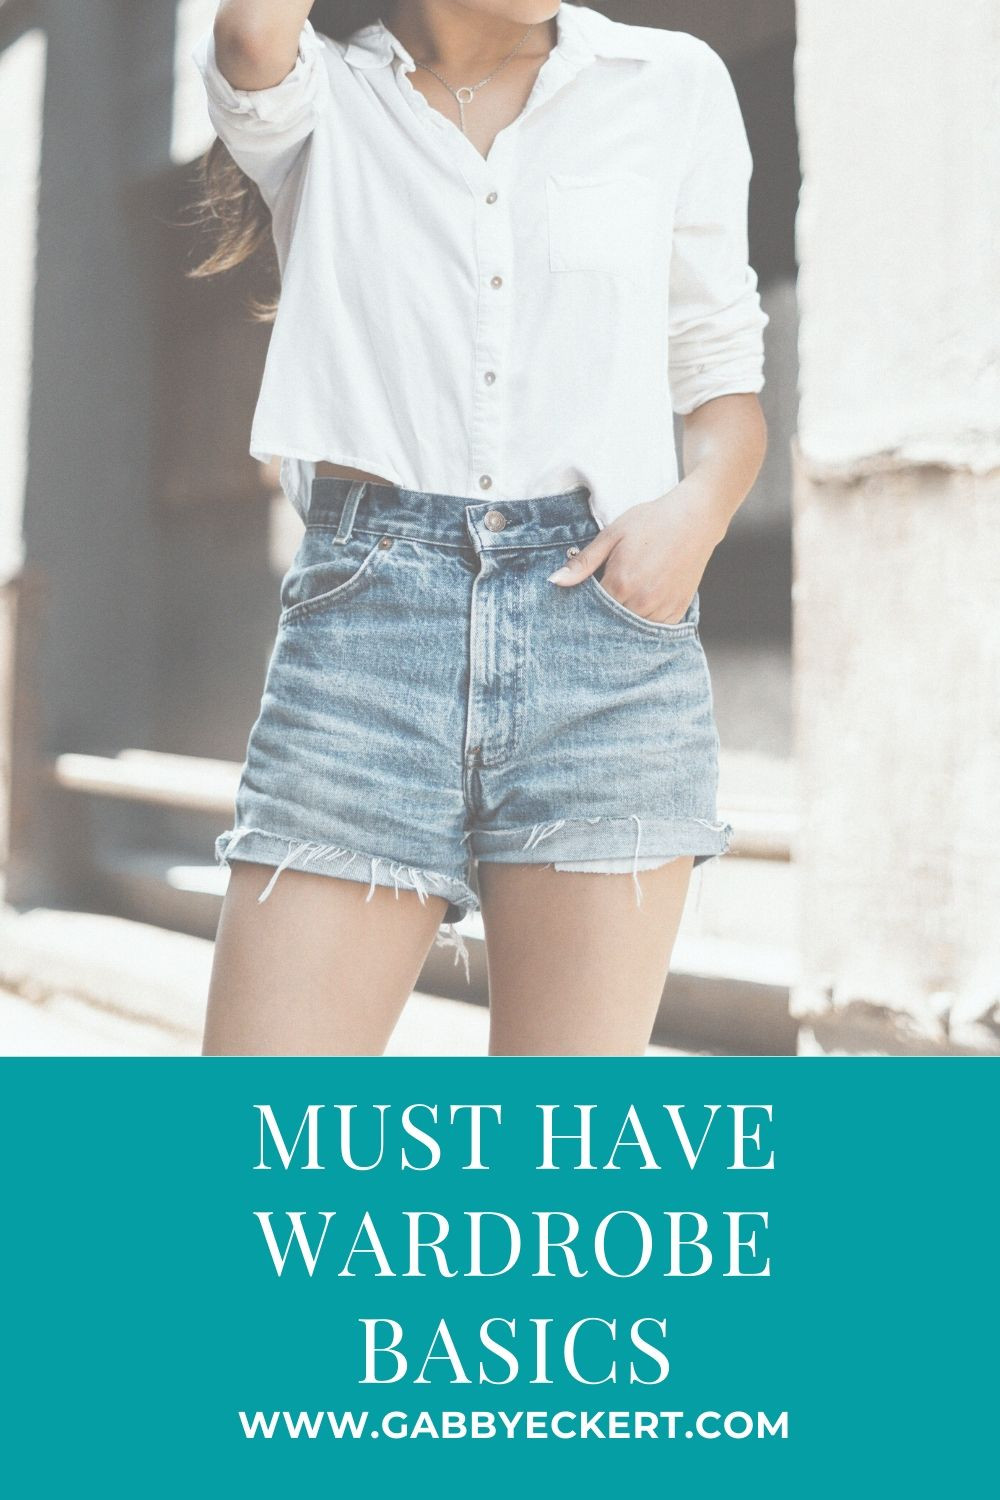 must have wardrobe basics and wardrobe essentials